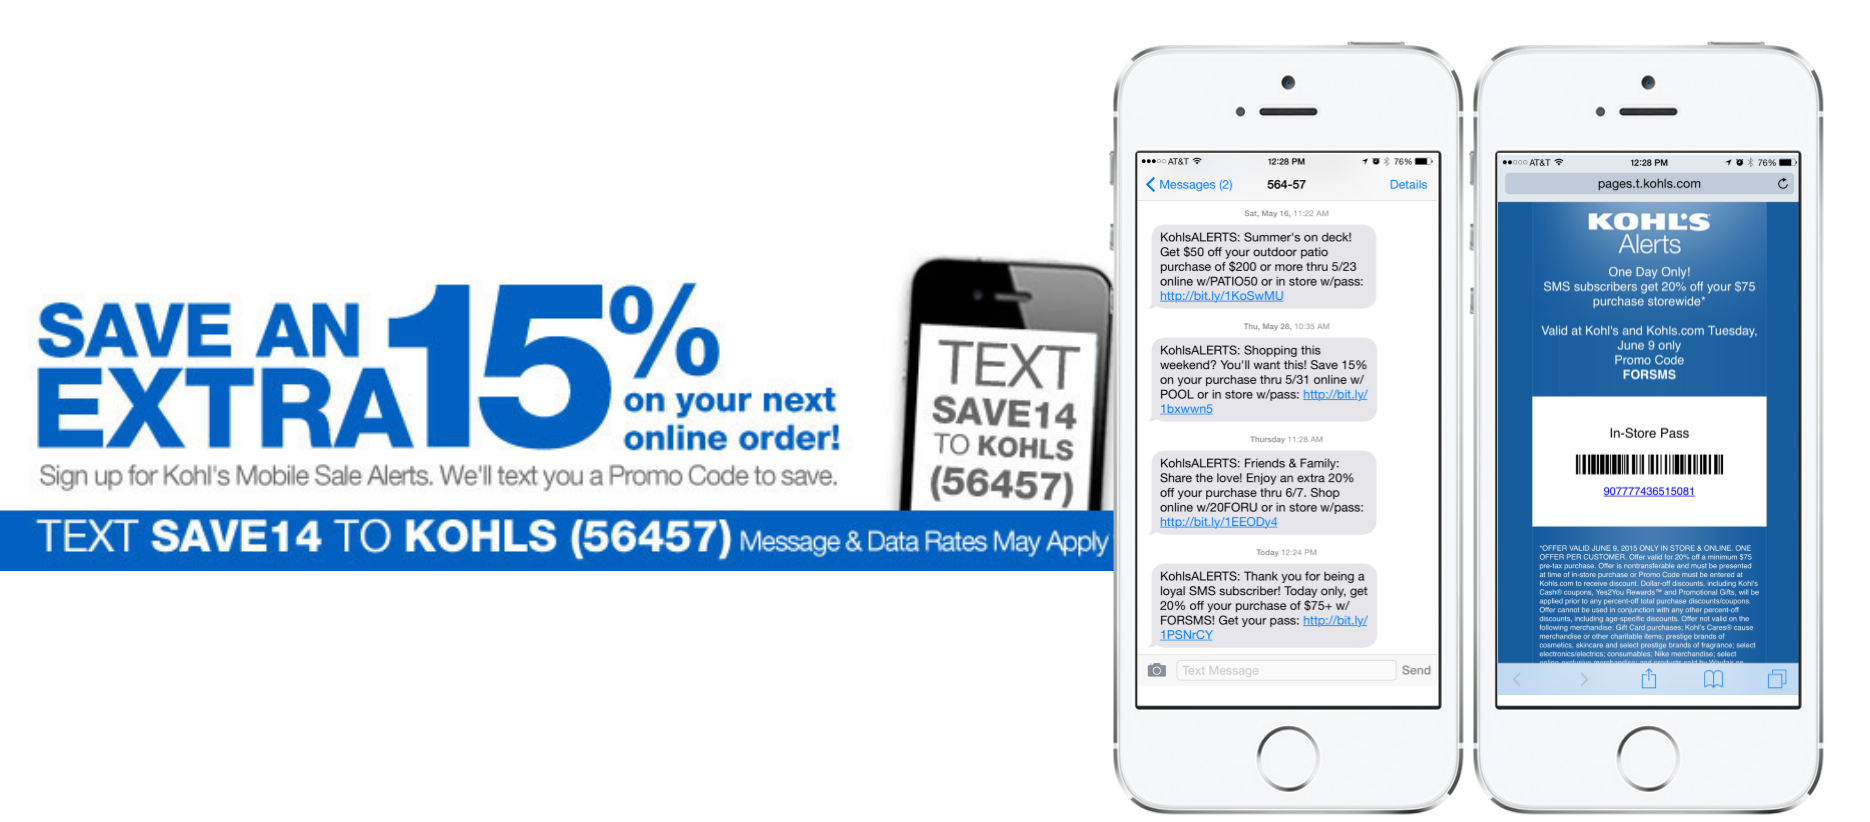 Kohls mobile messaging and marketing